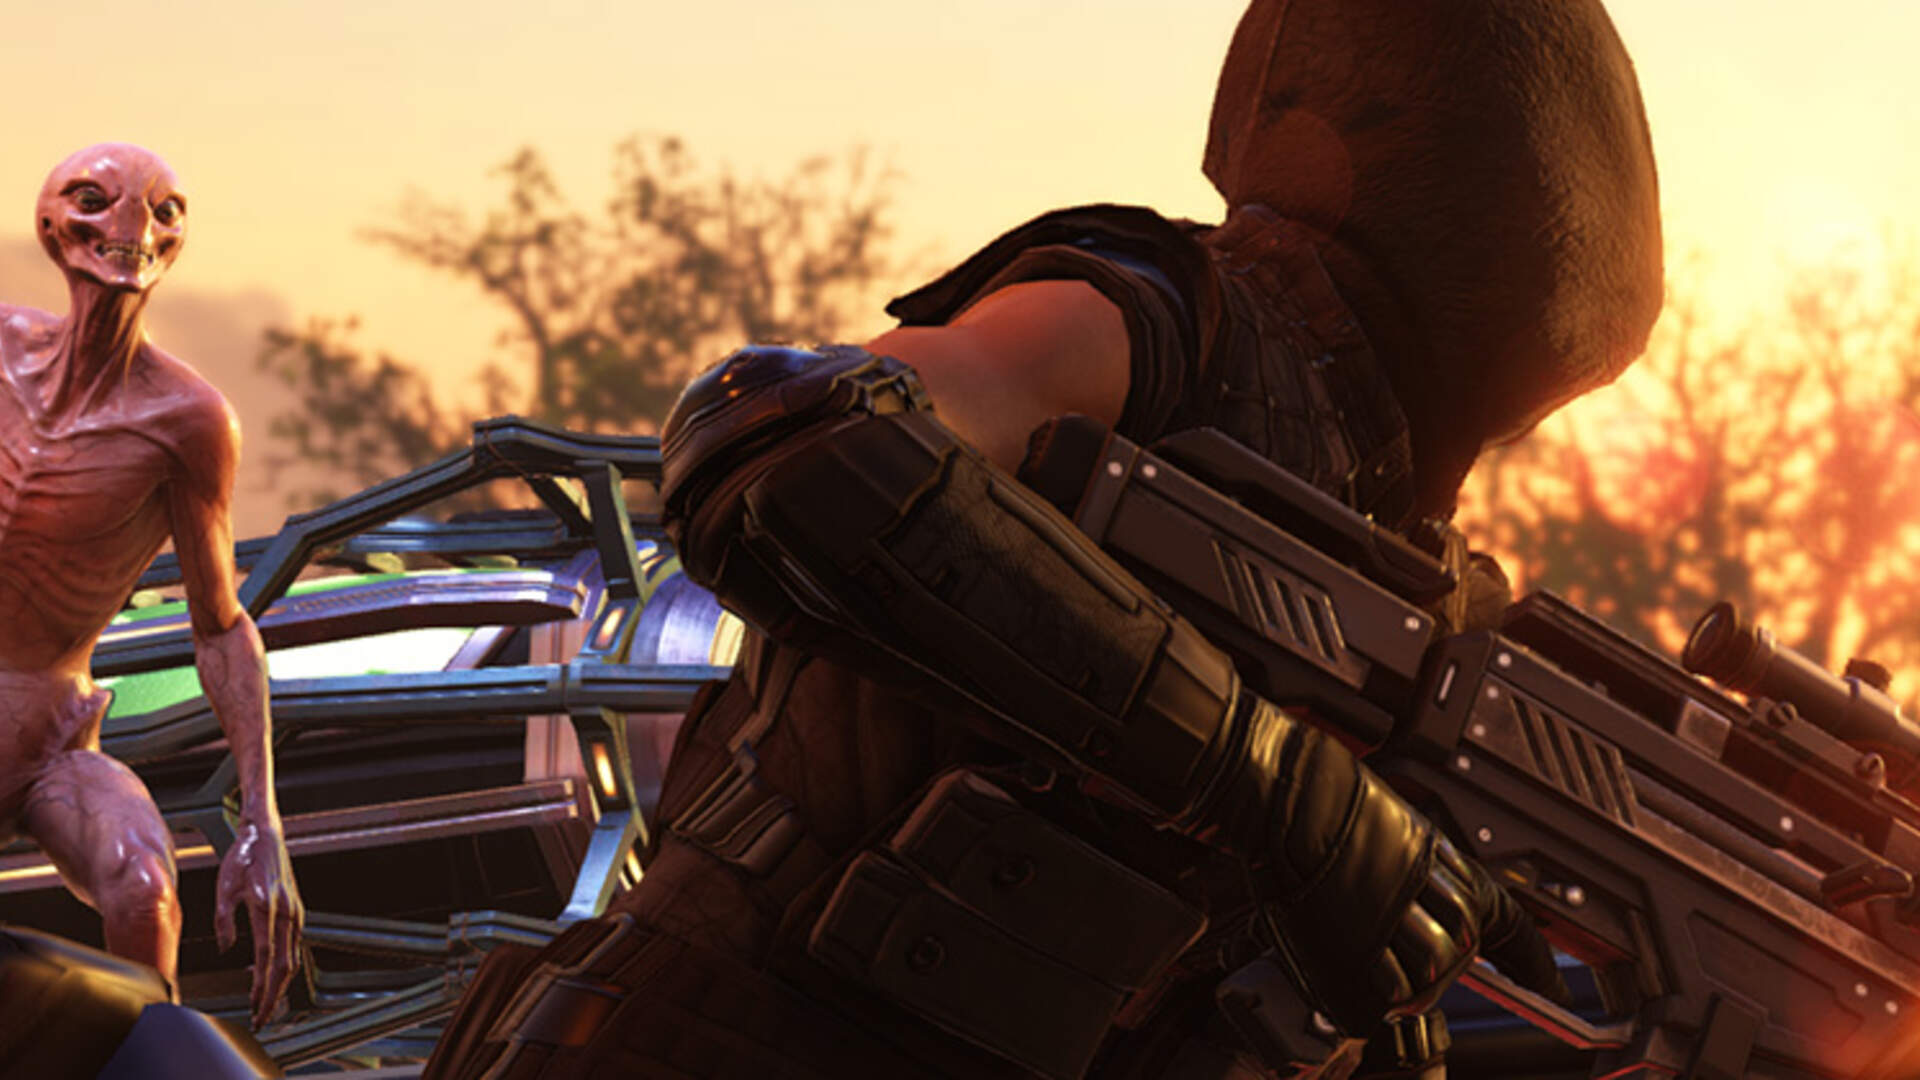 XCOM 2 is Closer in Spirit to the Original UFO Defense